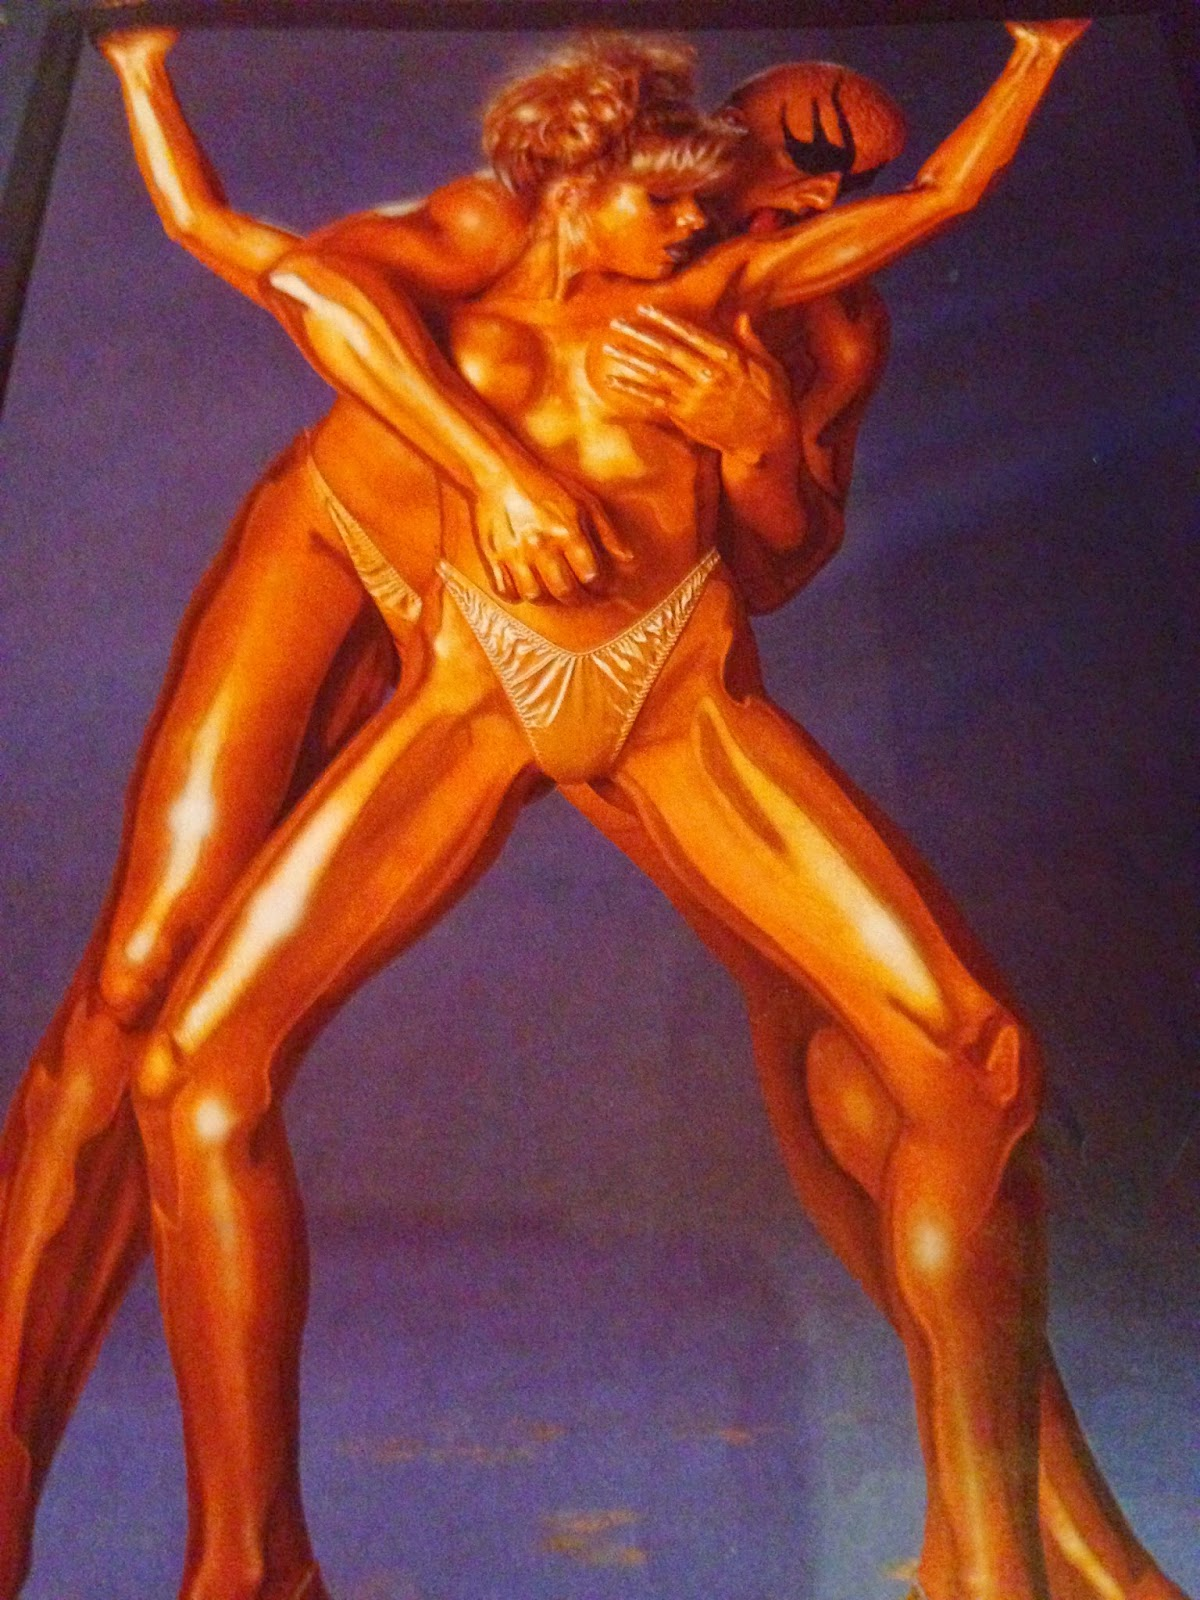 WWE - WWF RAW MAGAZINE 1997: Goldust and Marlena